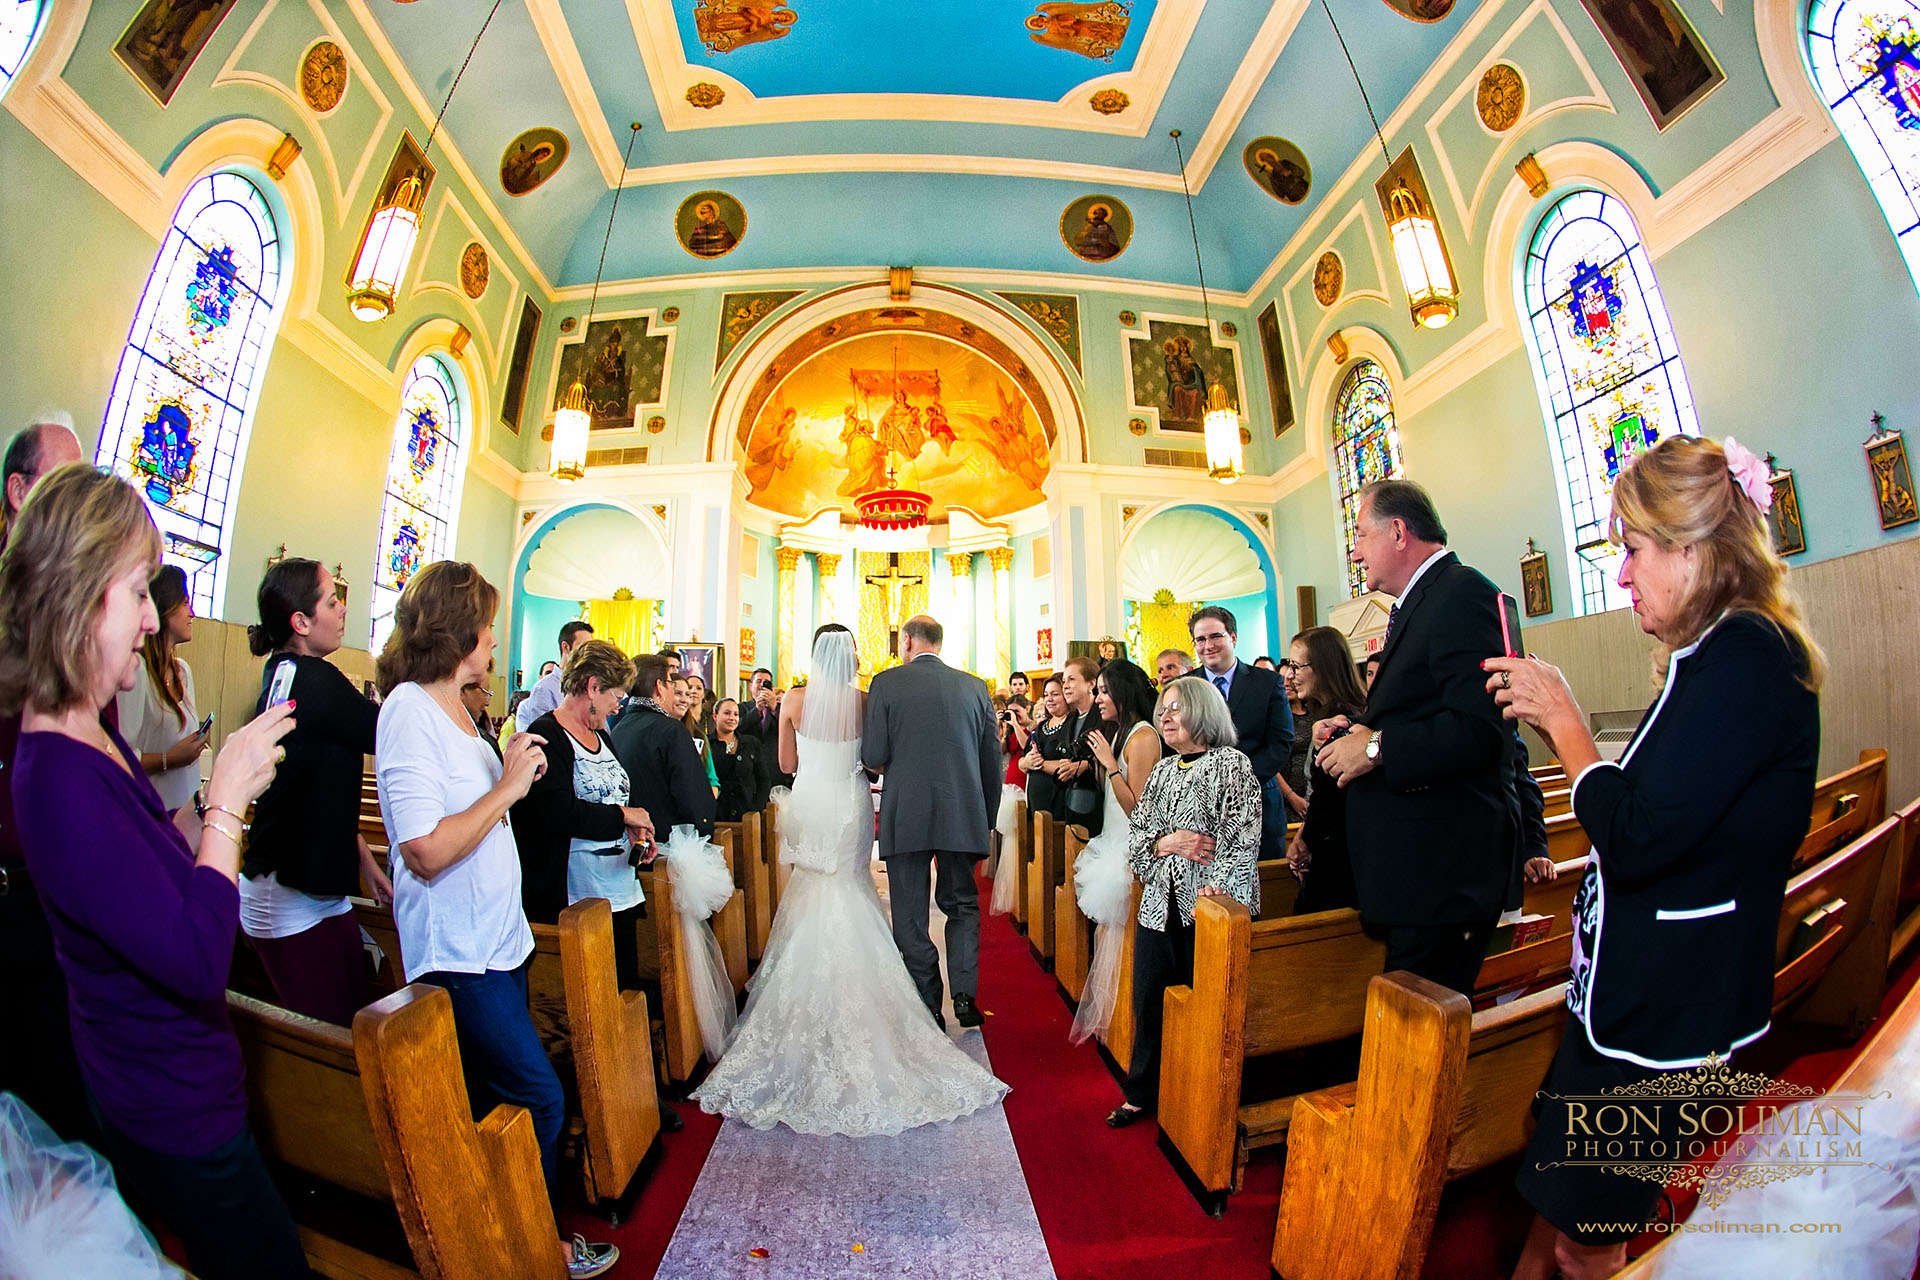 Our Lady of Mount Carmel Church wedding